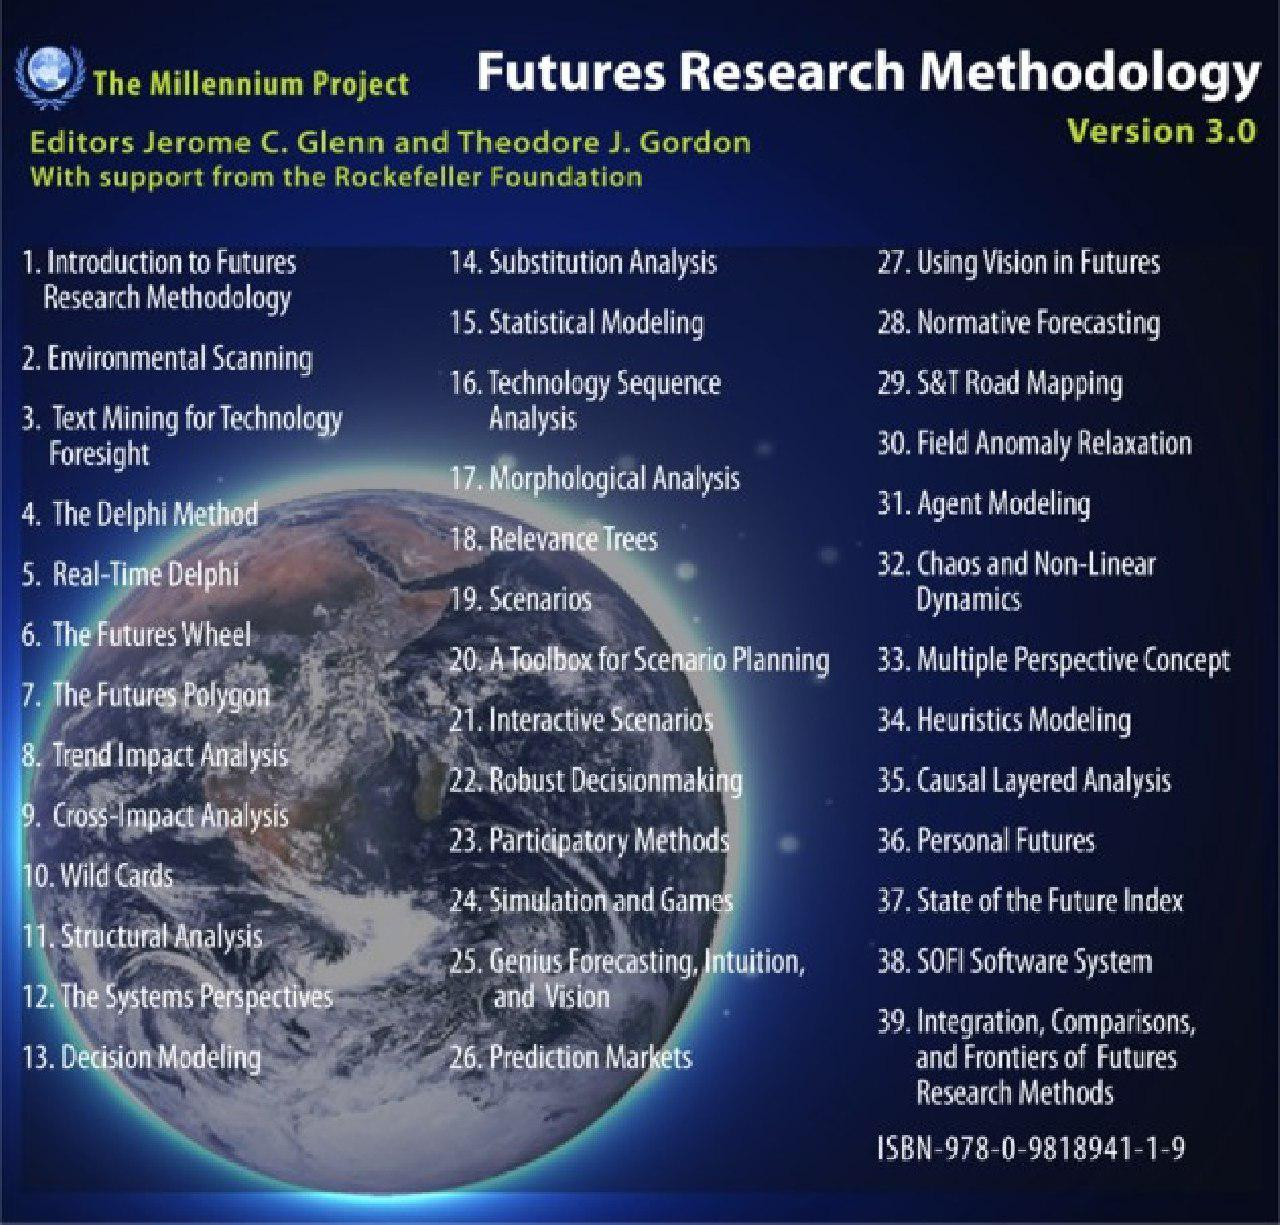 Futures Research Methodology Ver 3.0